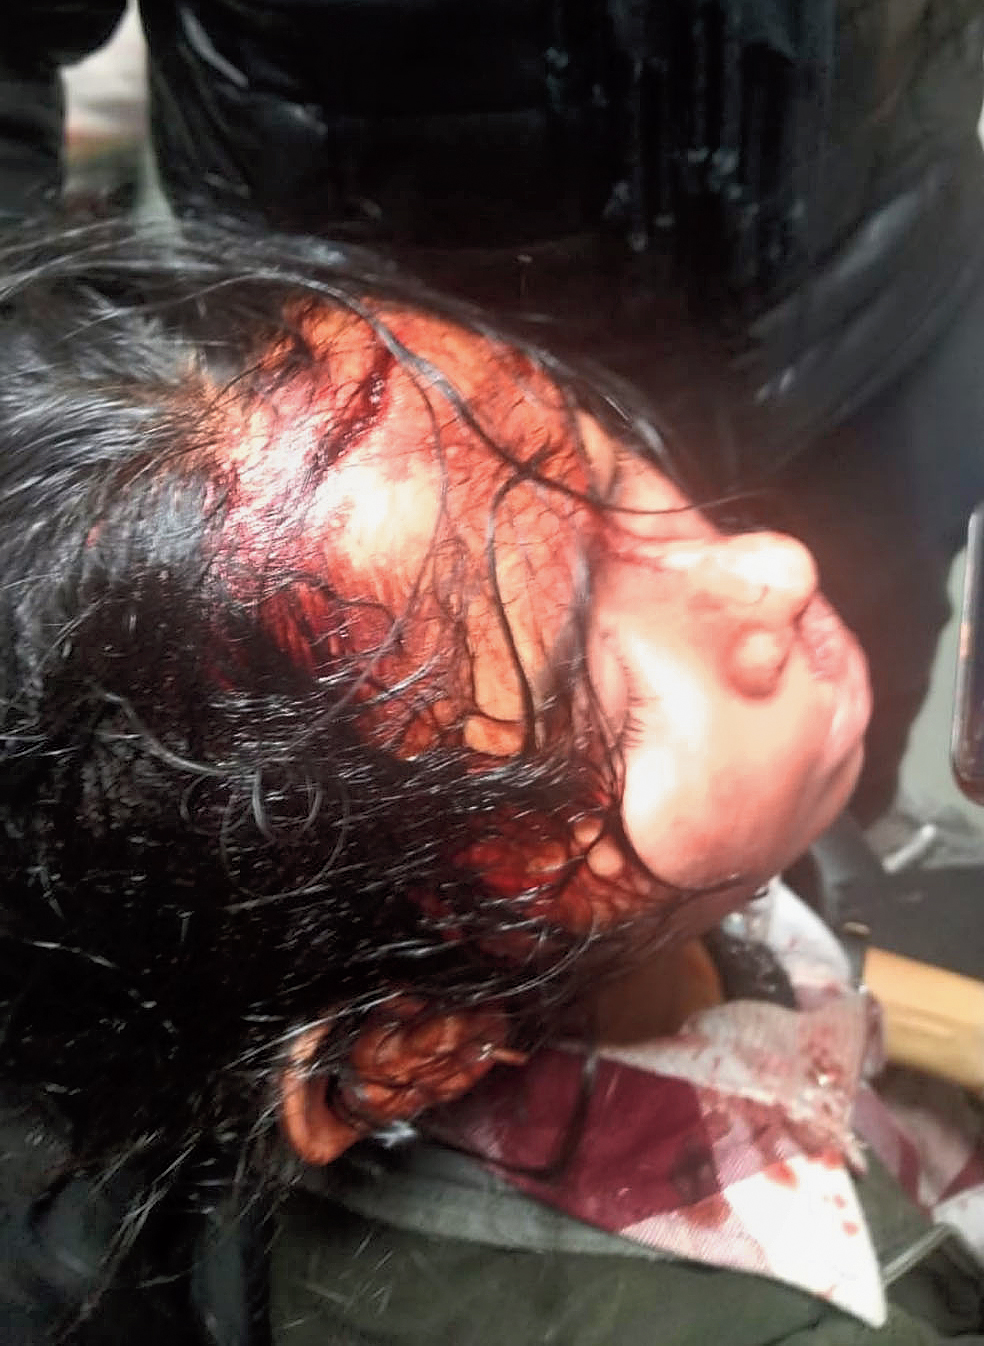 Aishe Ghosh, the JNUSU president, has a deep gash on her head after she was hit with an iron rod by masked goons near Sabarmati canteen around 7pm. She is being treated at AIIMS.